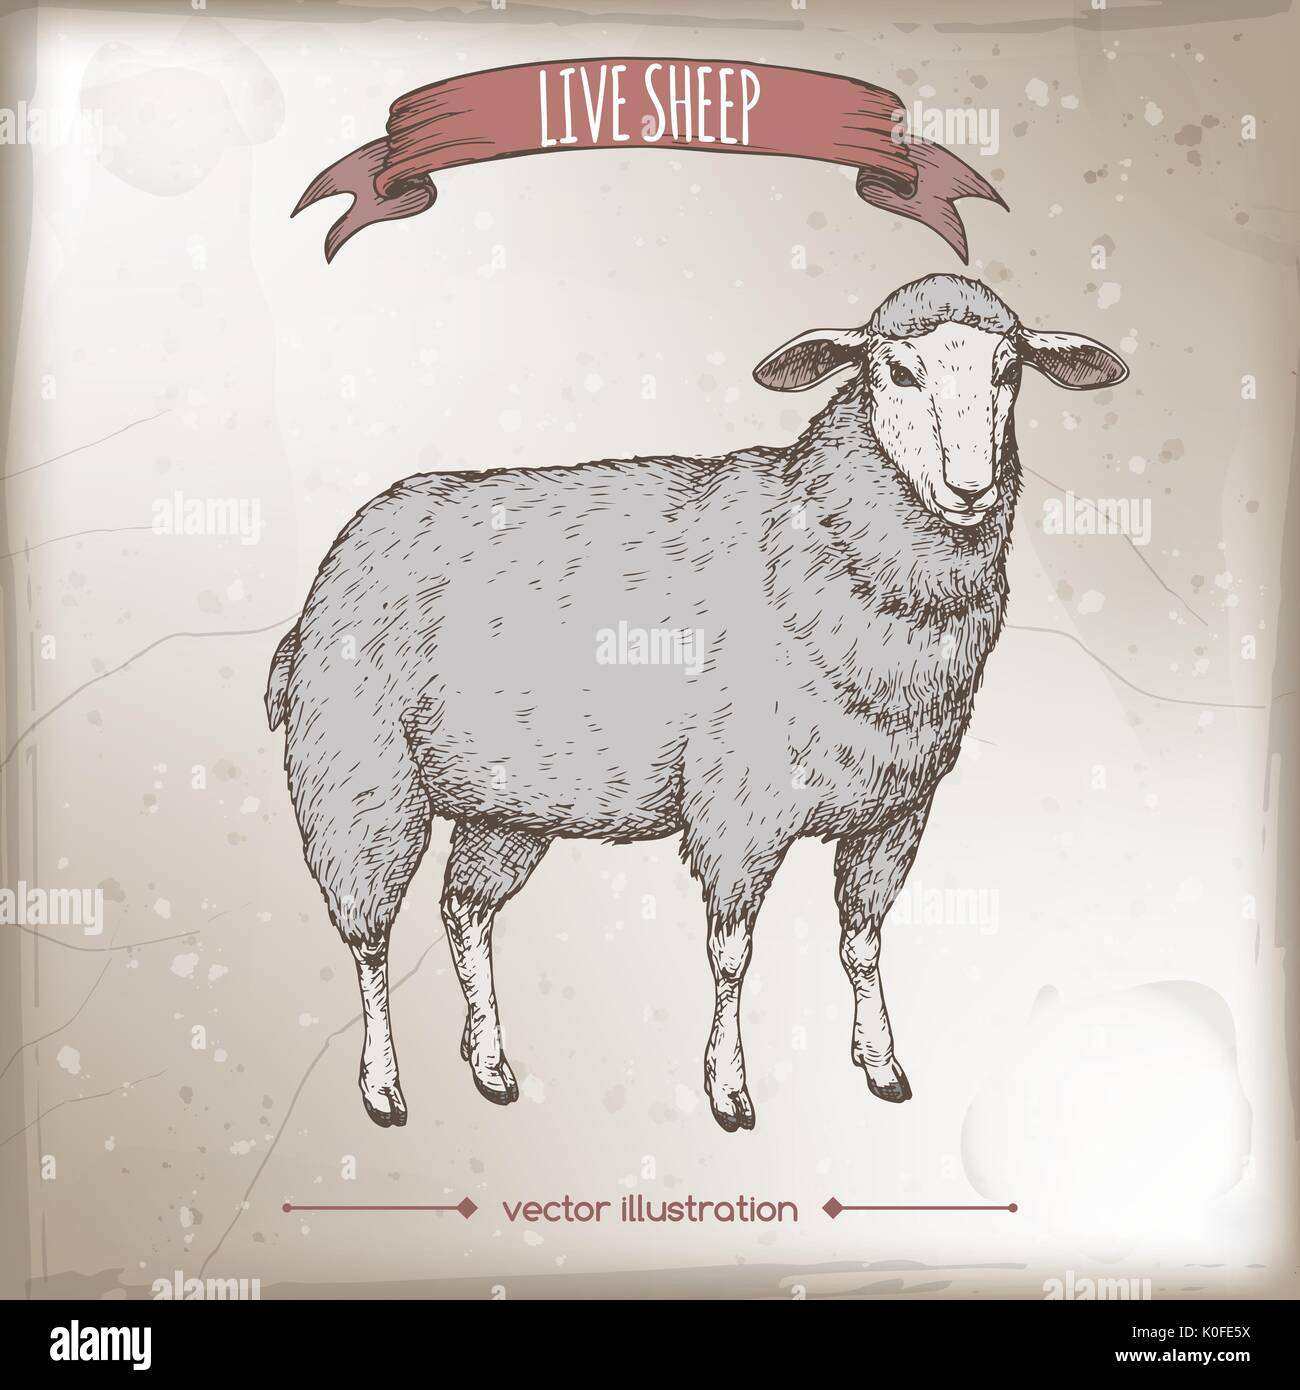 Vintage color label with live sheep. - Stock Vector